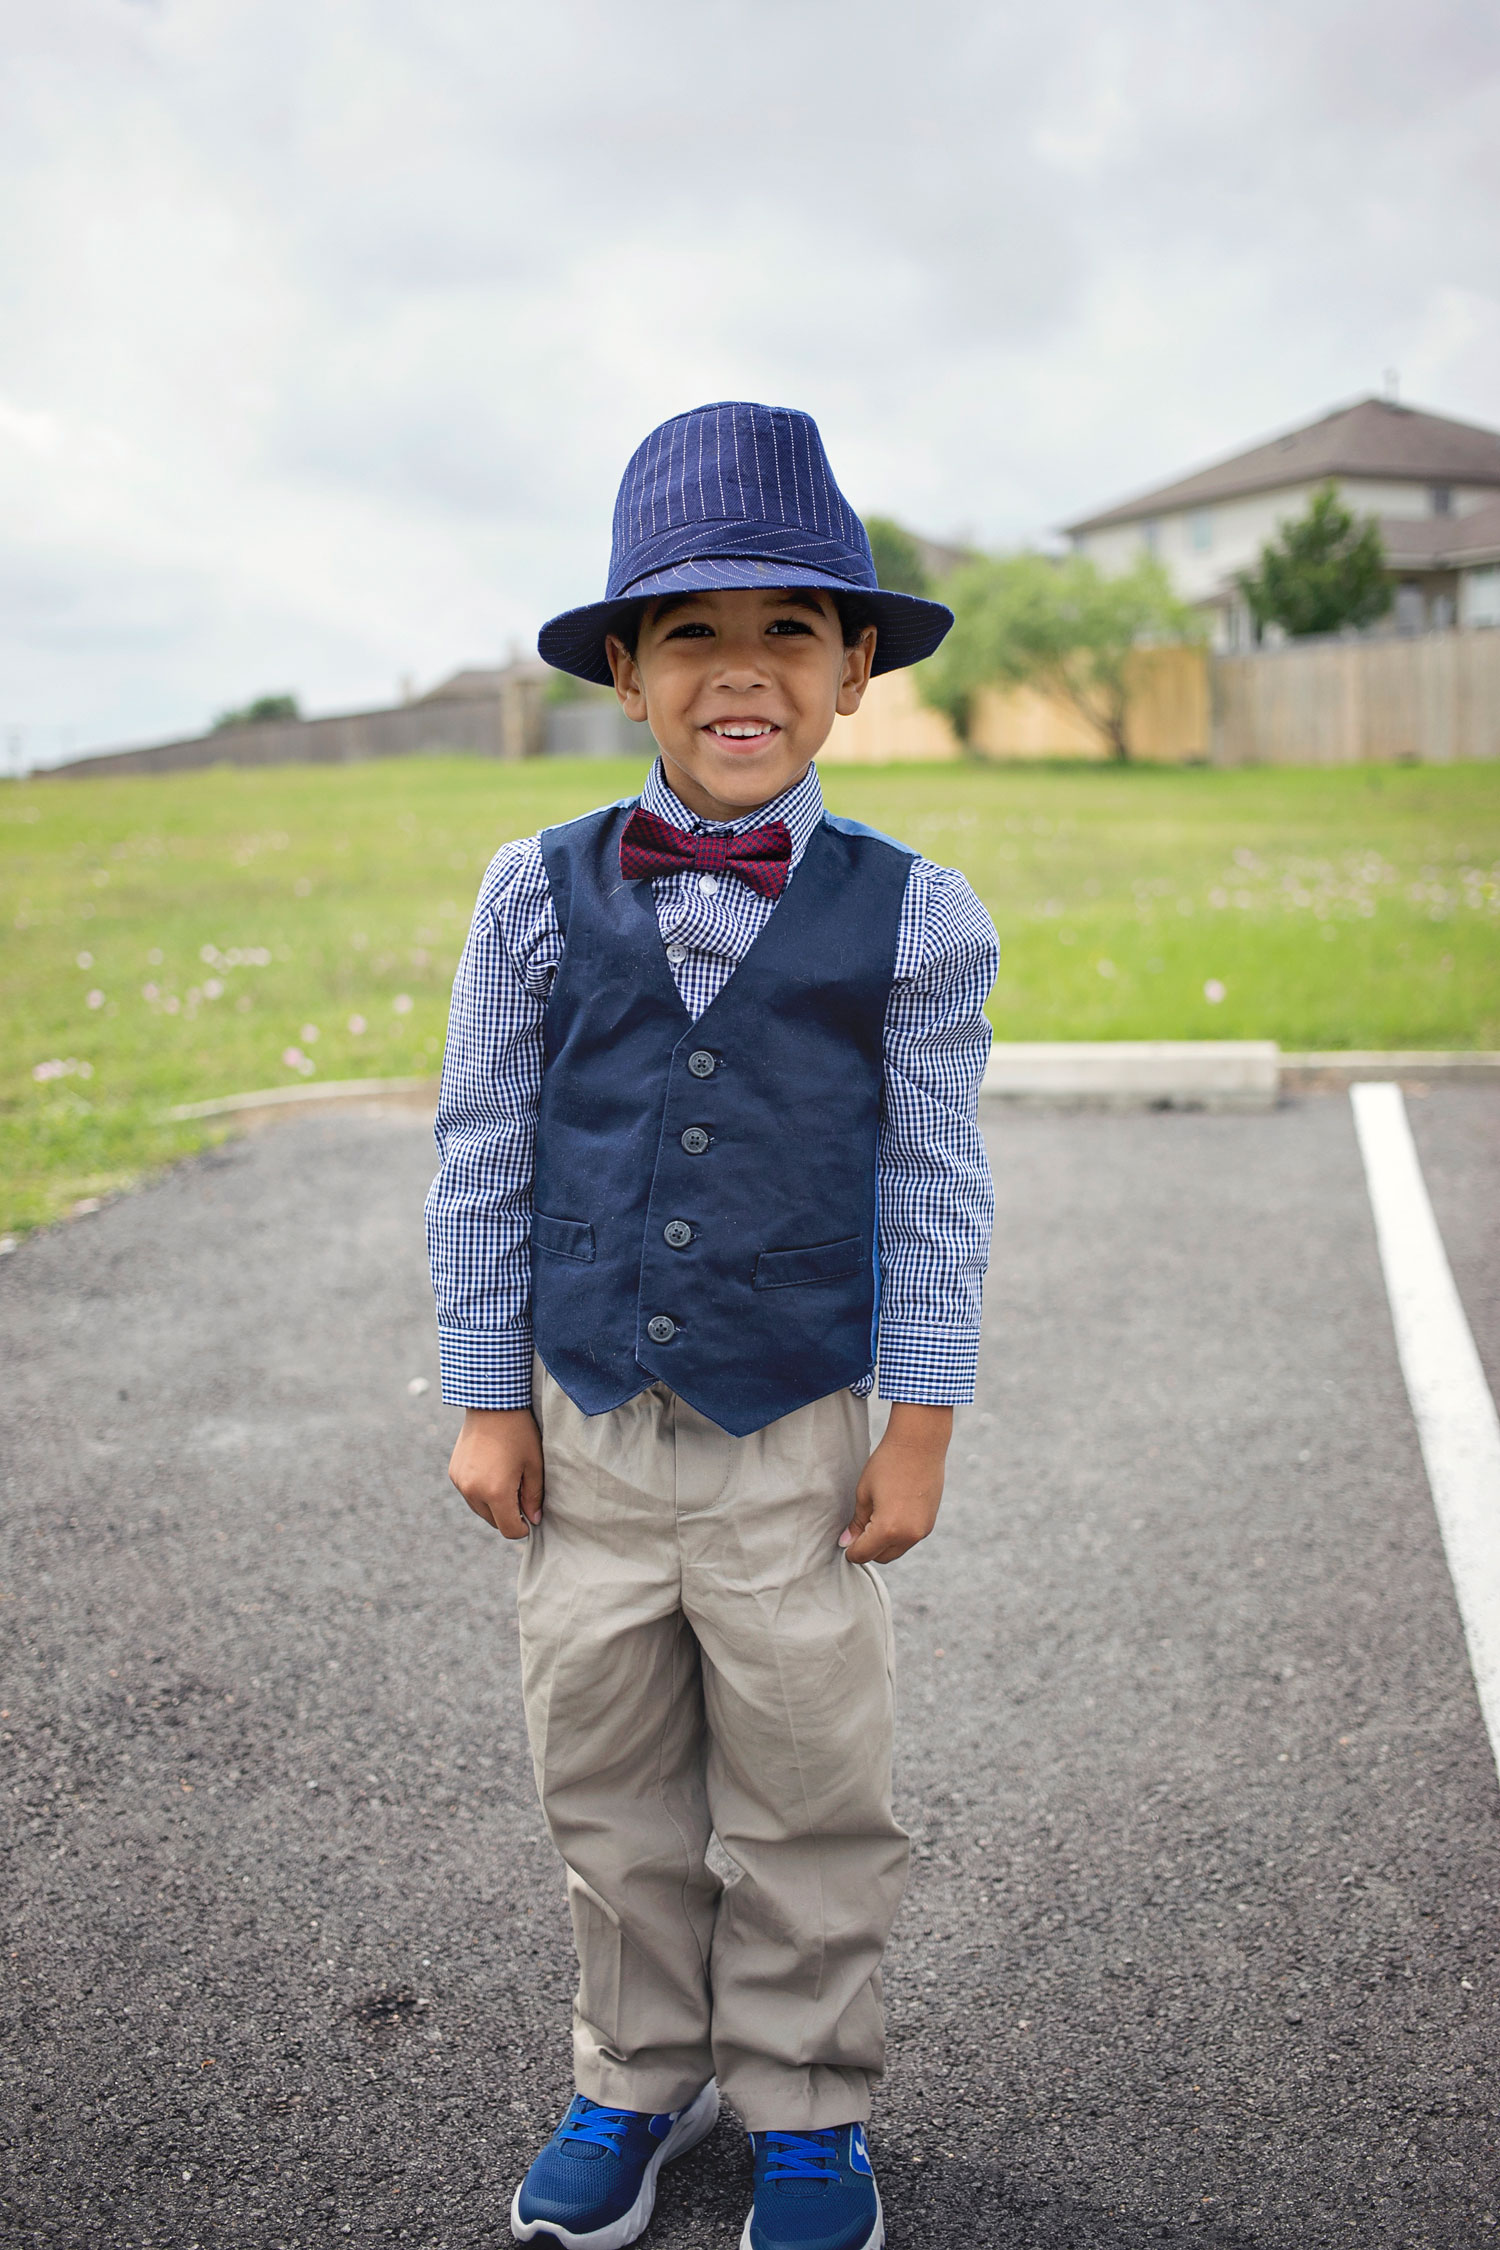 Dressed up all dapper for Easter 2017.